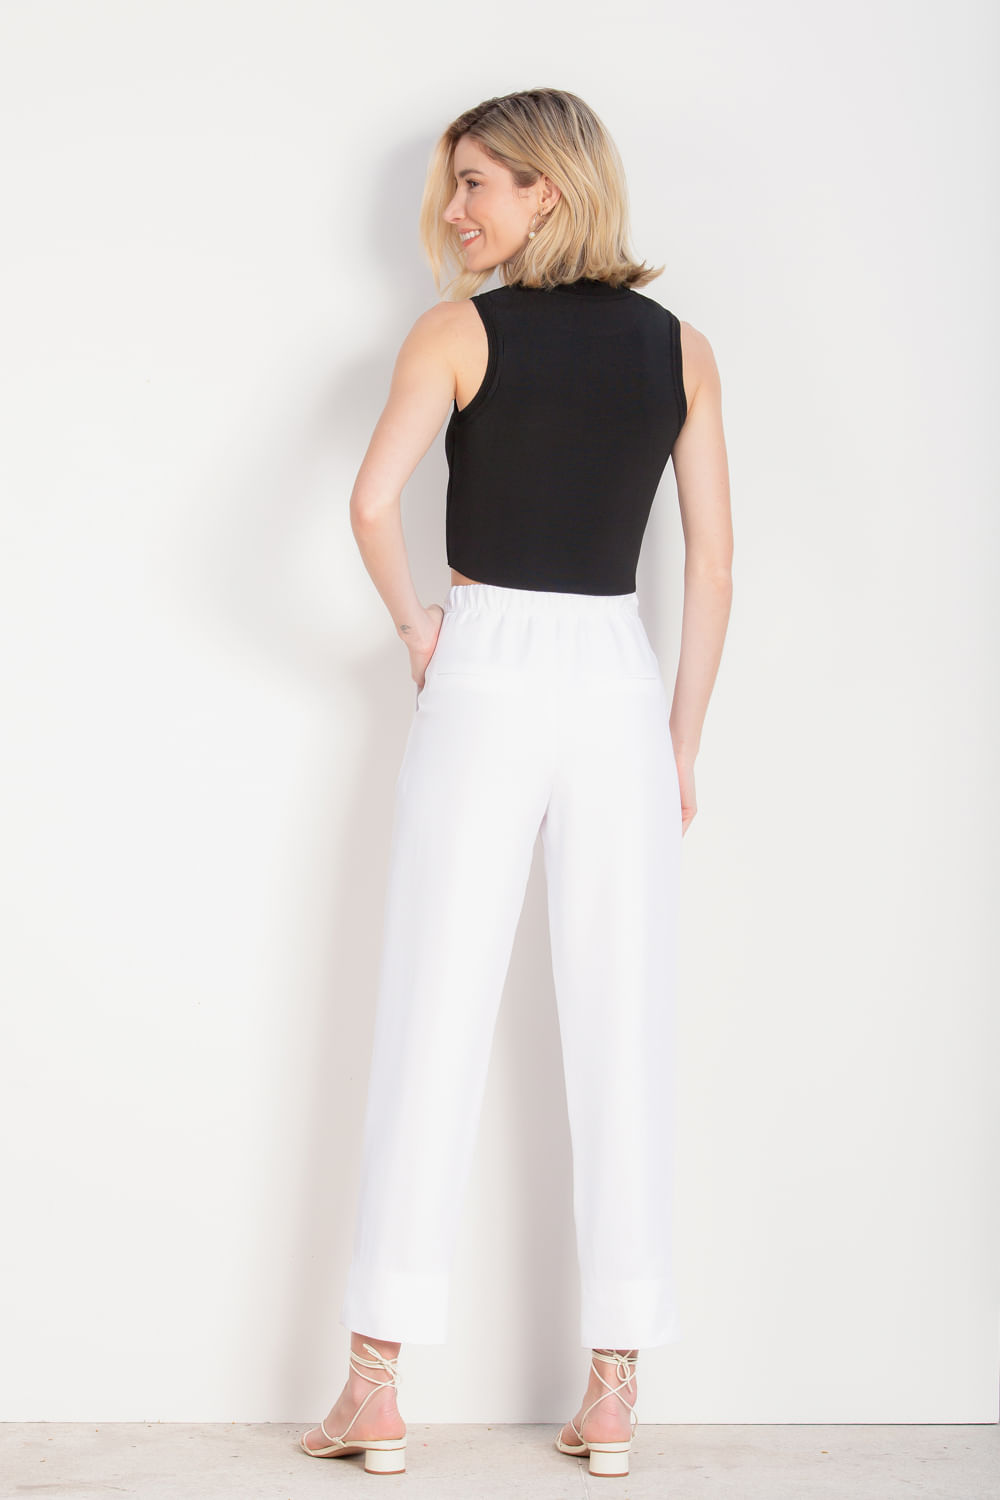 Cropped-Isis-Ref-6212-3-